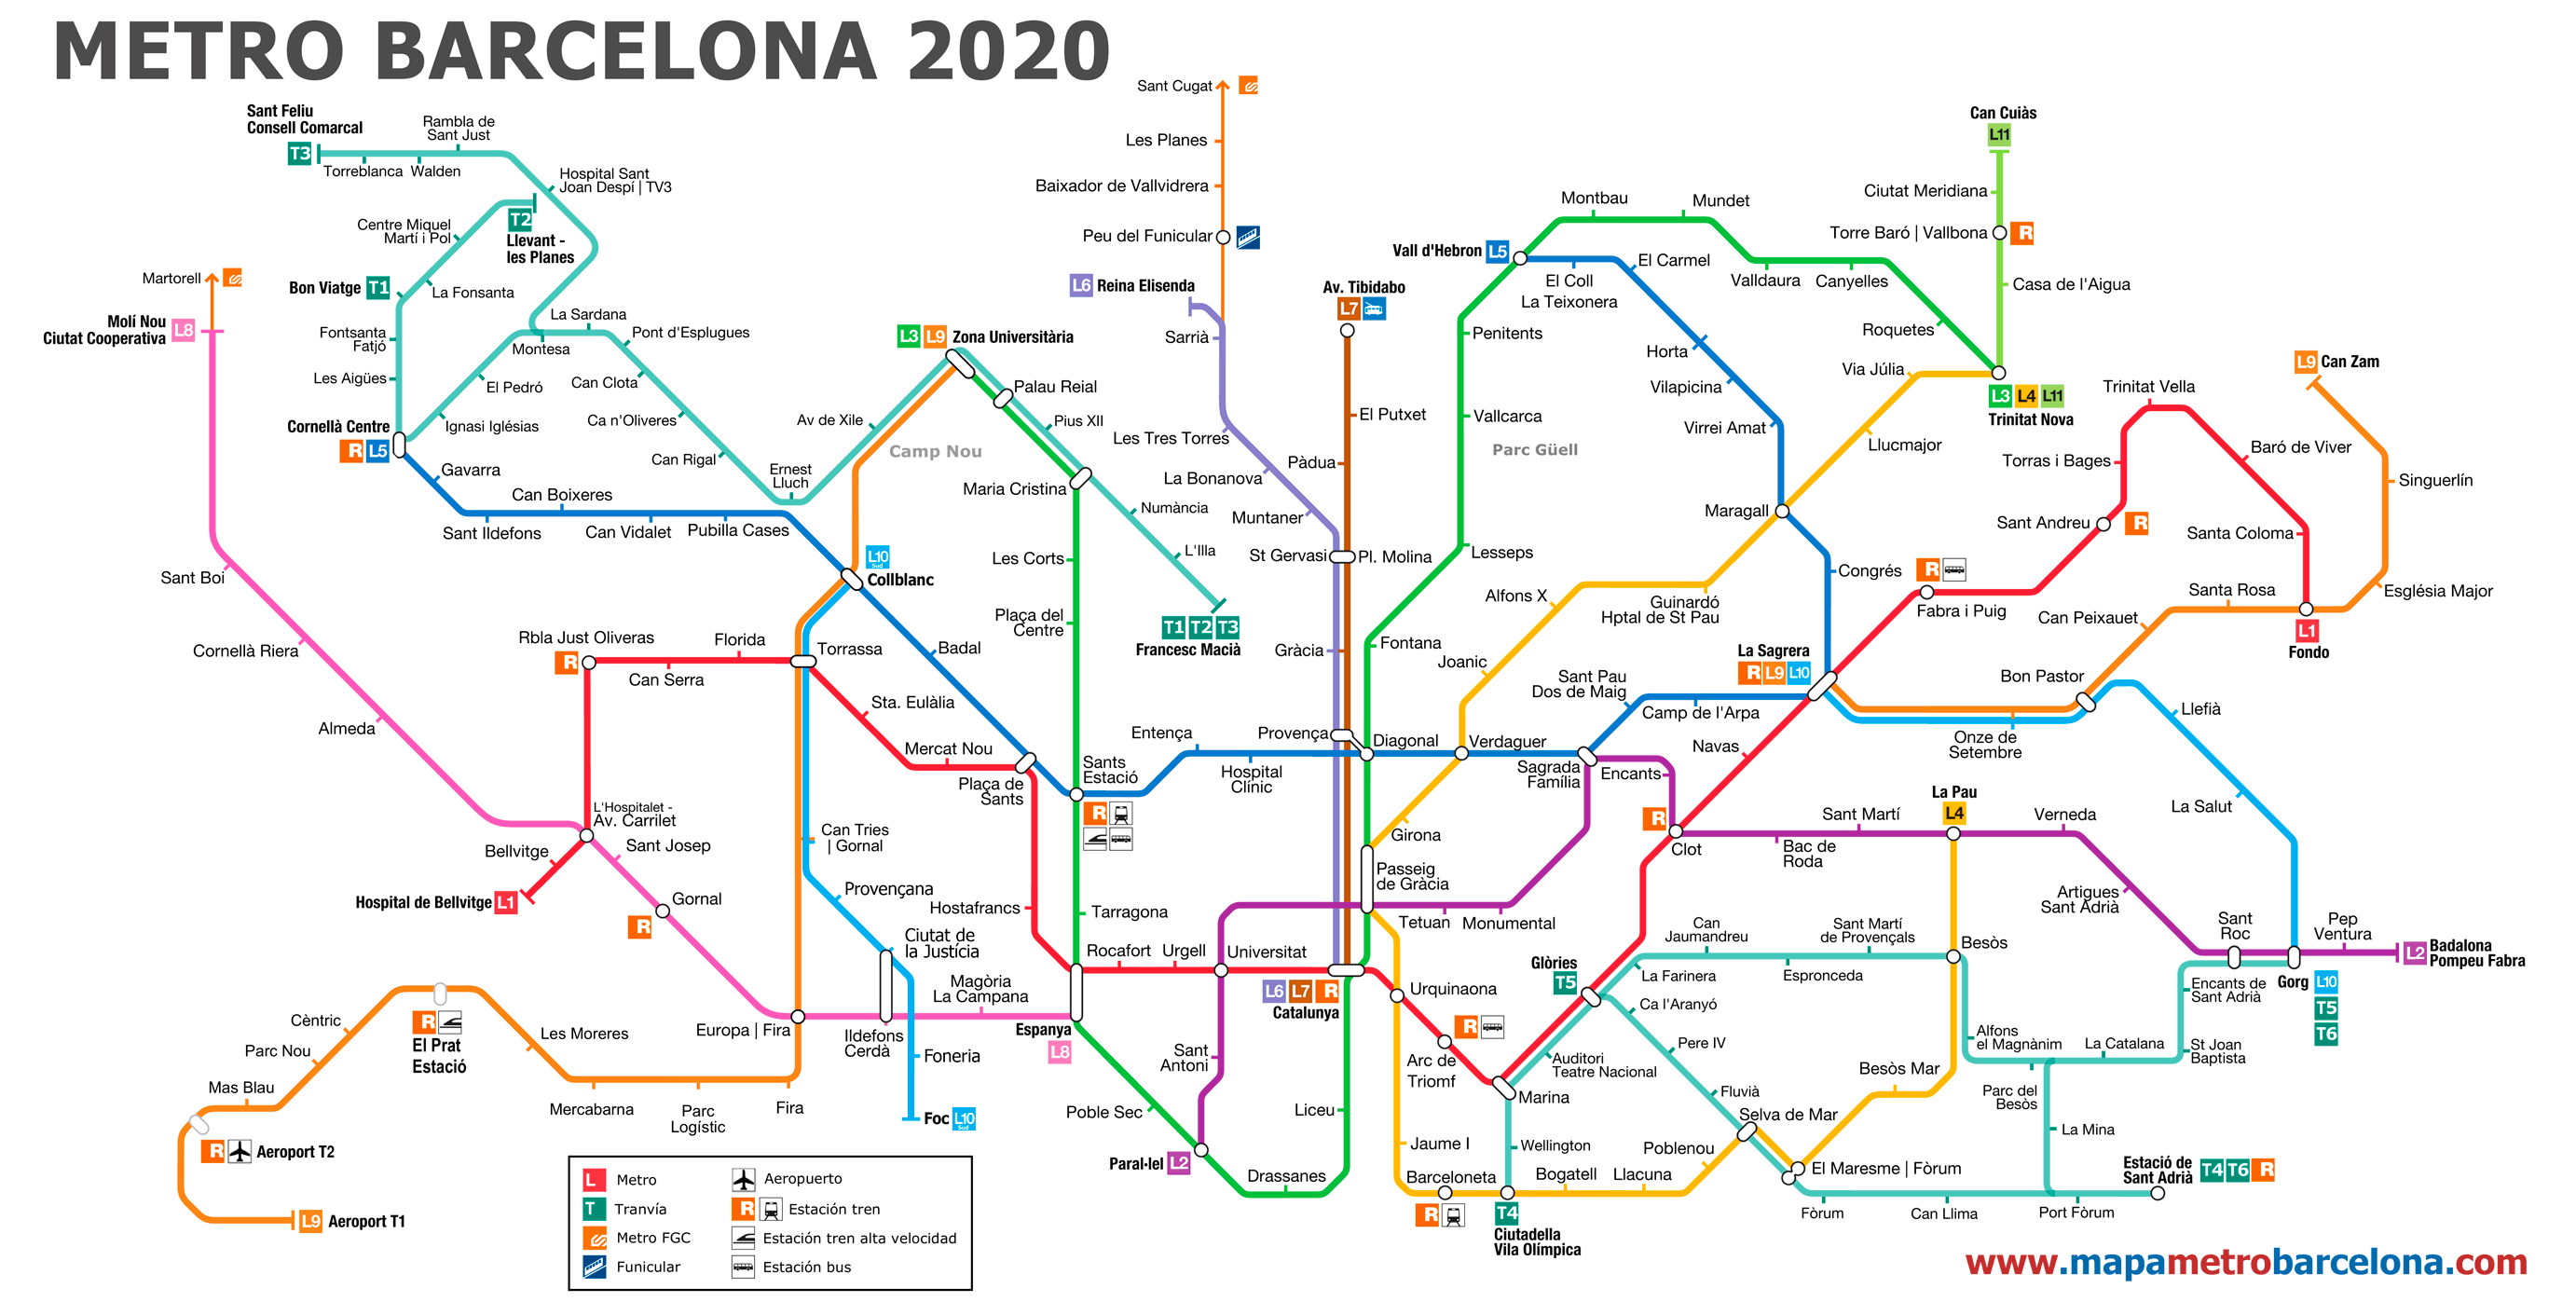 Seoul Subway Map 2018 Pdf.Metro Map Of Barcelona 2019 The Best